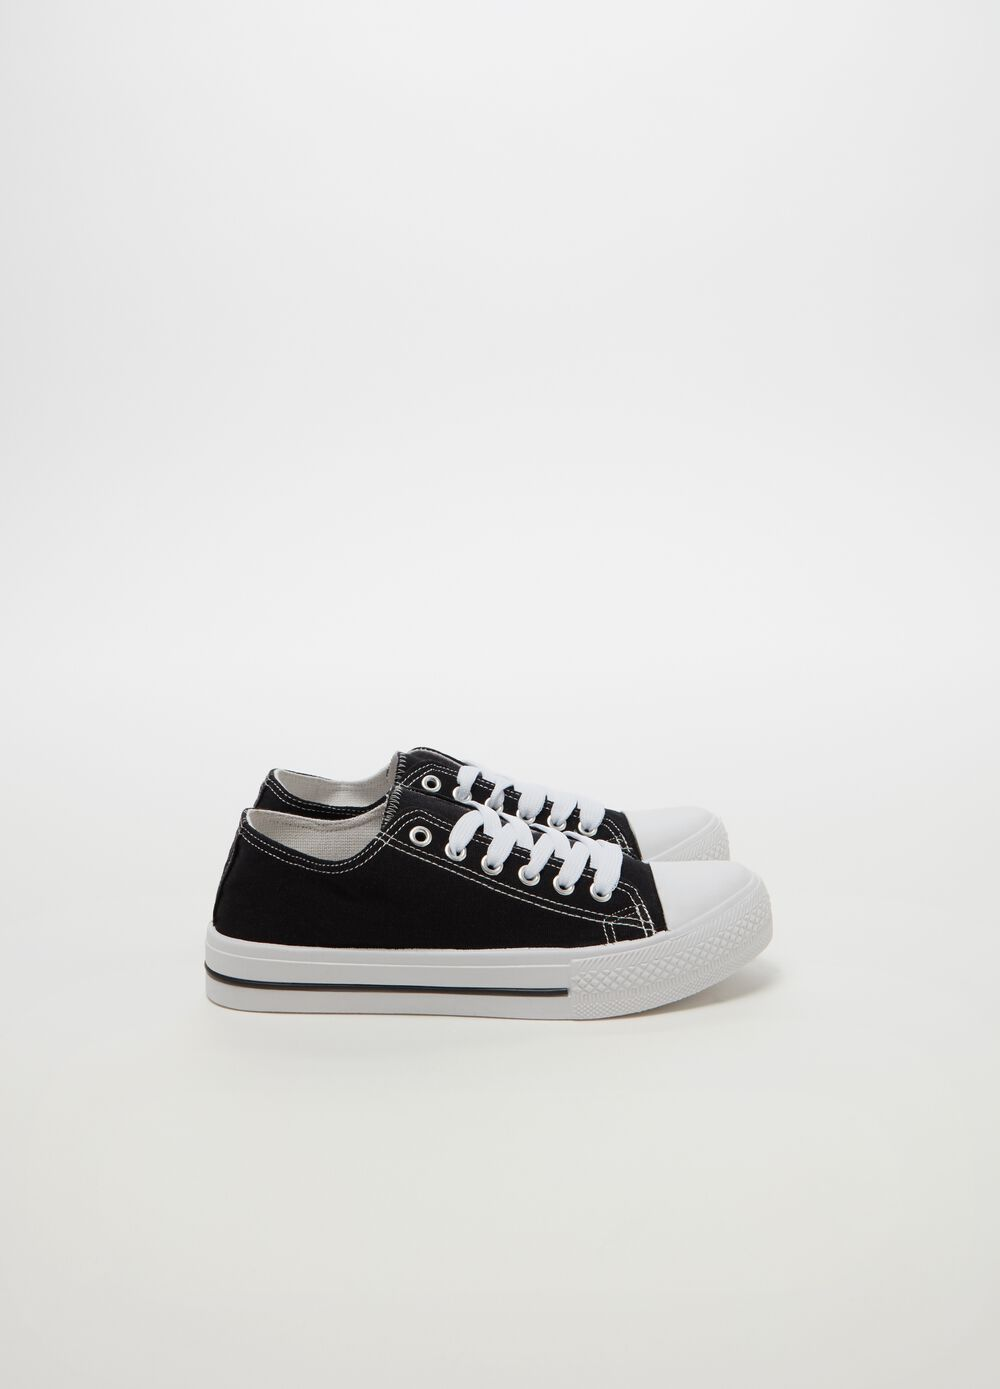 Solid colour sneakers with contrasting stitching